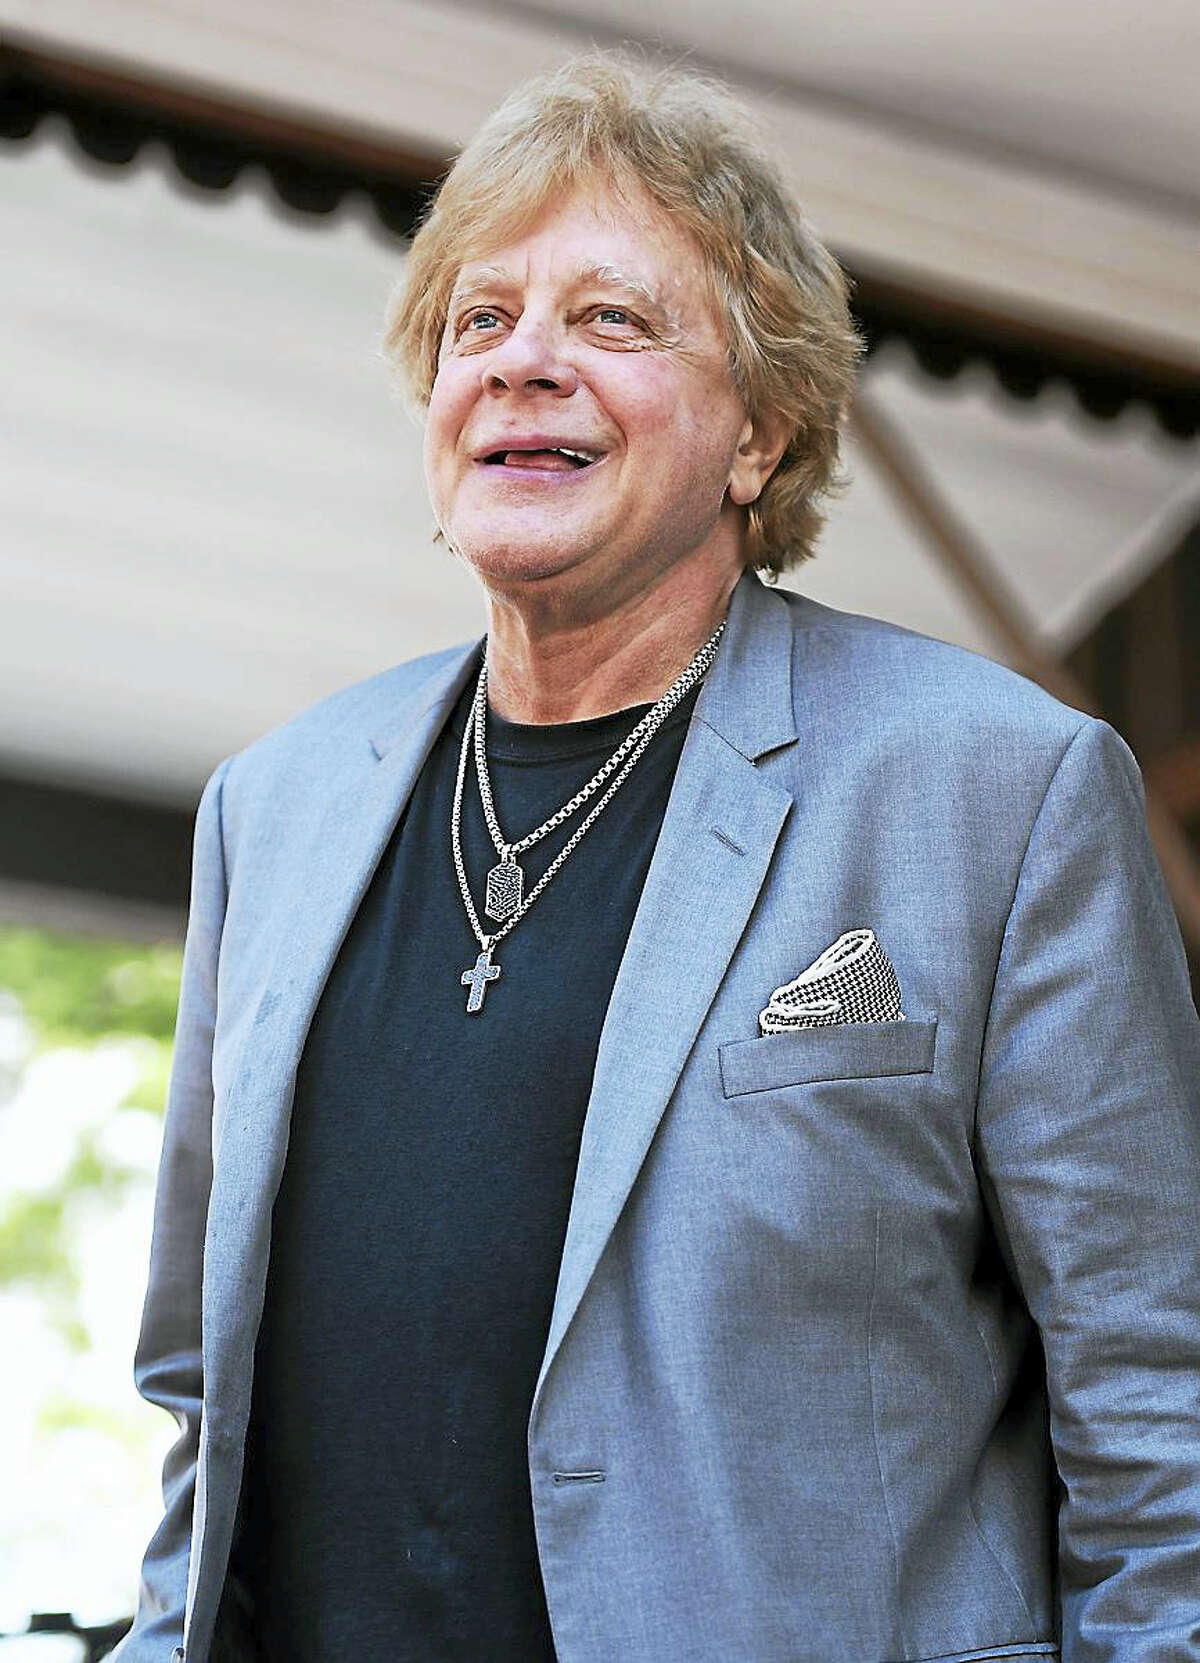 Singer, songwriter and multi-instrumentalist Eddie Money smiles at his fans at the start of his concert at the Indian Ranch Amphitheater in Webster, Mass., on Saturday, July 15. Eddie enjoyed success during the 1970s and 1980s with a string of Top 40 hits and platinum albums, selling nearly 45 million albums to date. His son, Dez Money & The Faze was the opening act and his daughter Jesse Money performed along with the Eddie Money Band. To learn more about the great line up of outdoor afternoon concerts held at Indian Ranch, visit www.indianranch.com